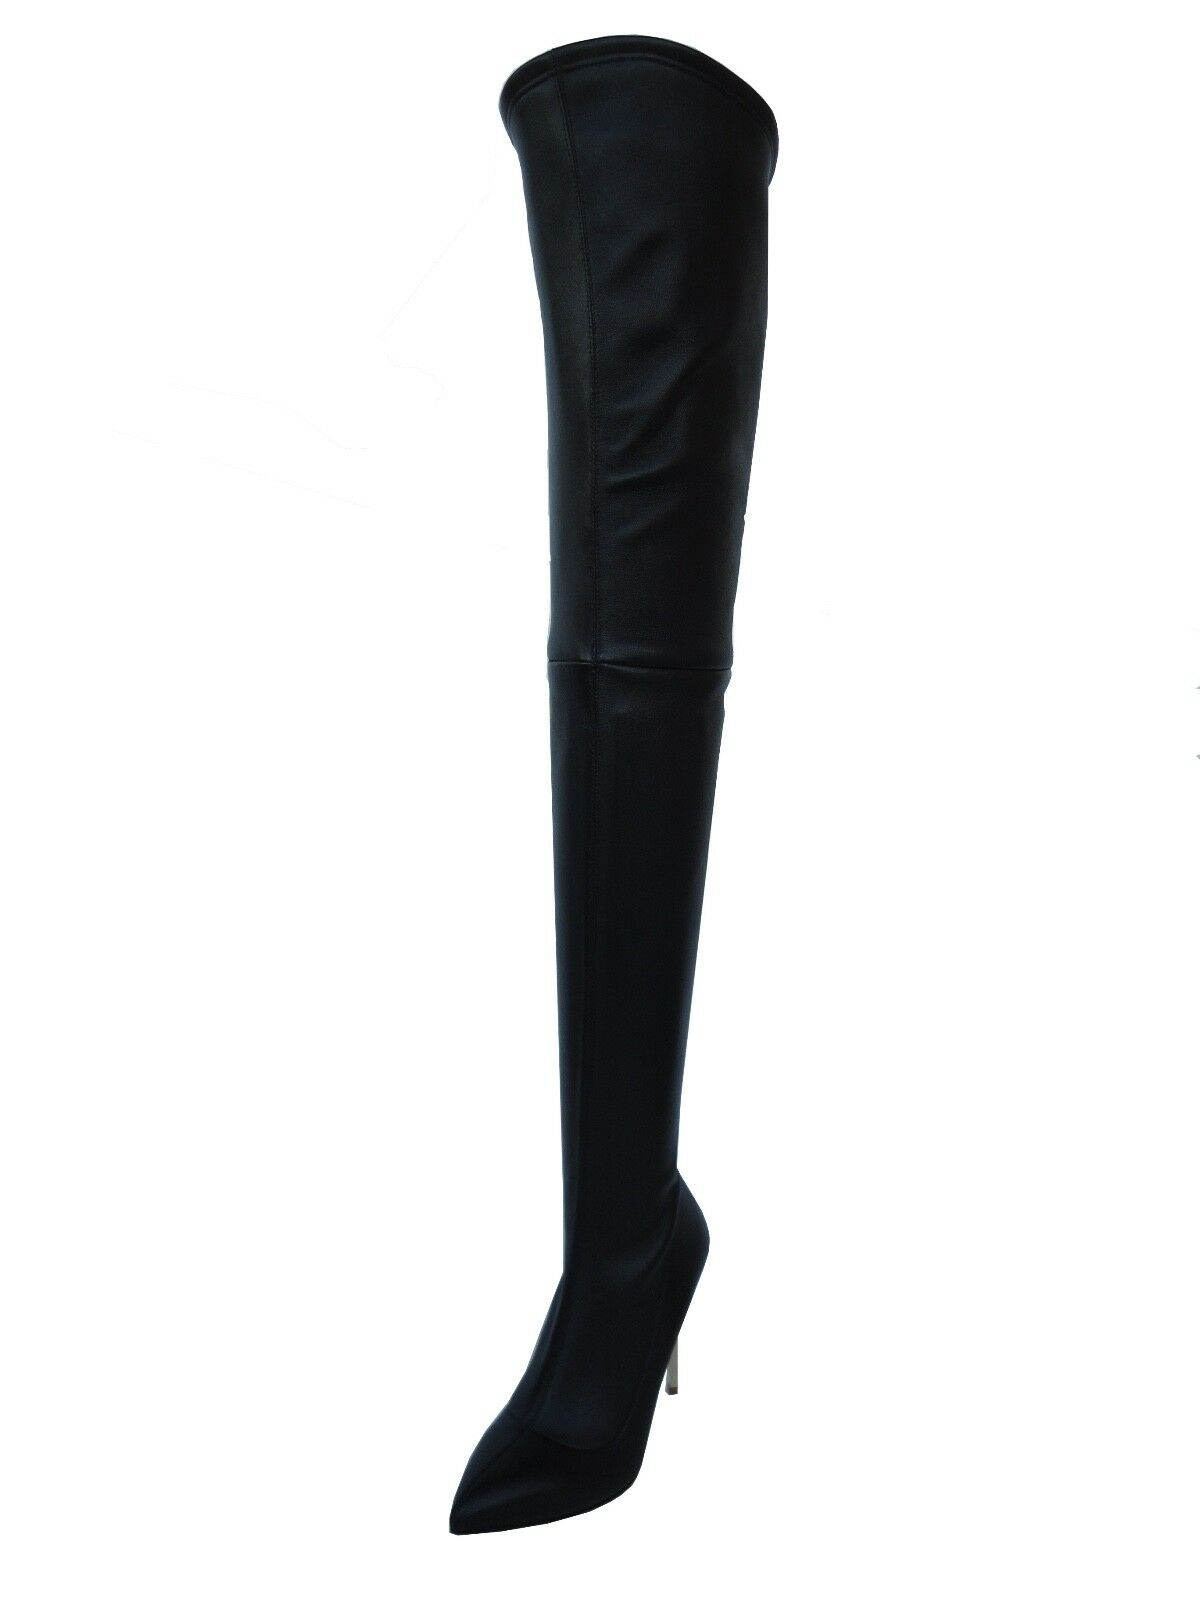 CQ COUTURE STIEFEL CUSTOM OVERKNEE BOOT STIEFEL COUTURE STIVALI REAL STRETCH HEELS BLACK NERO 39 f0edbe